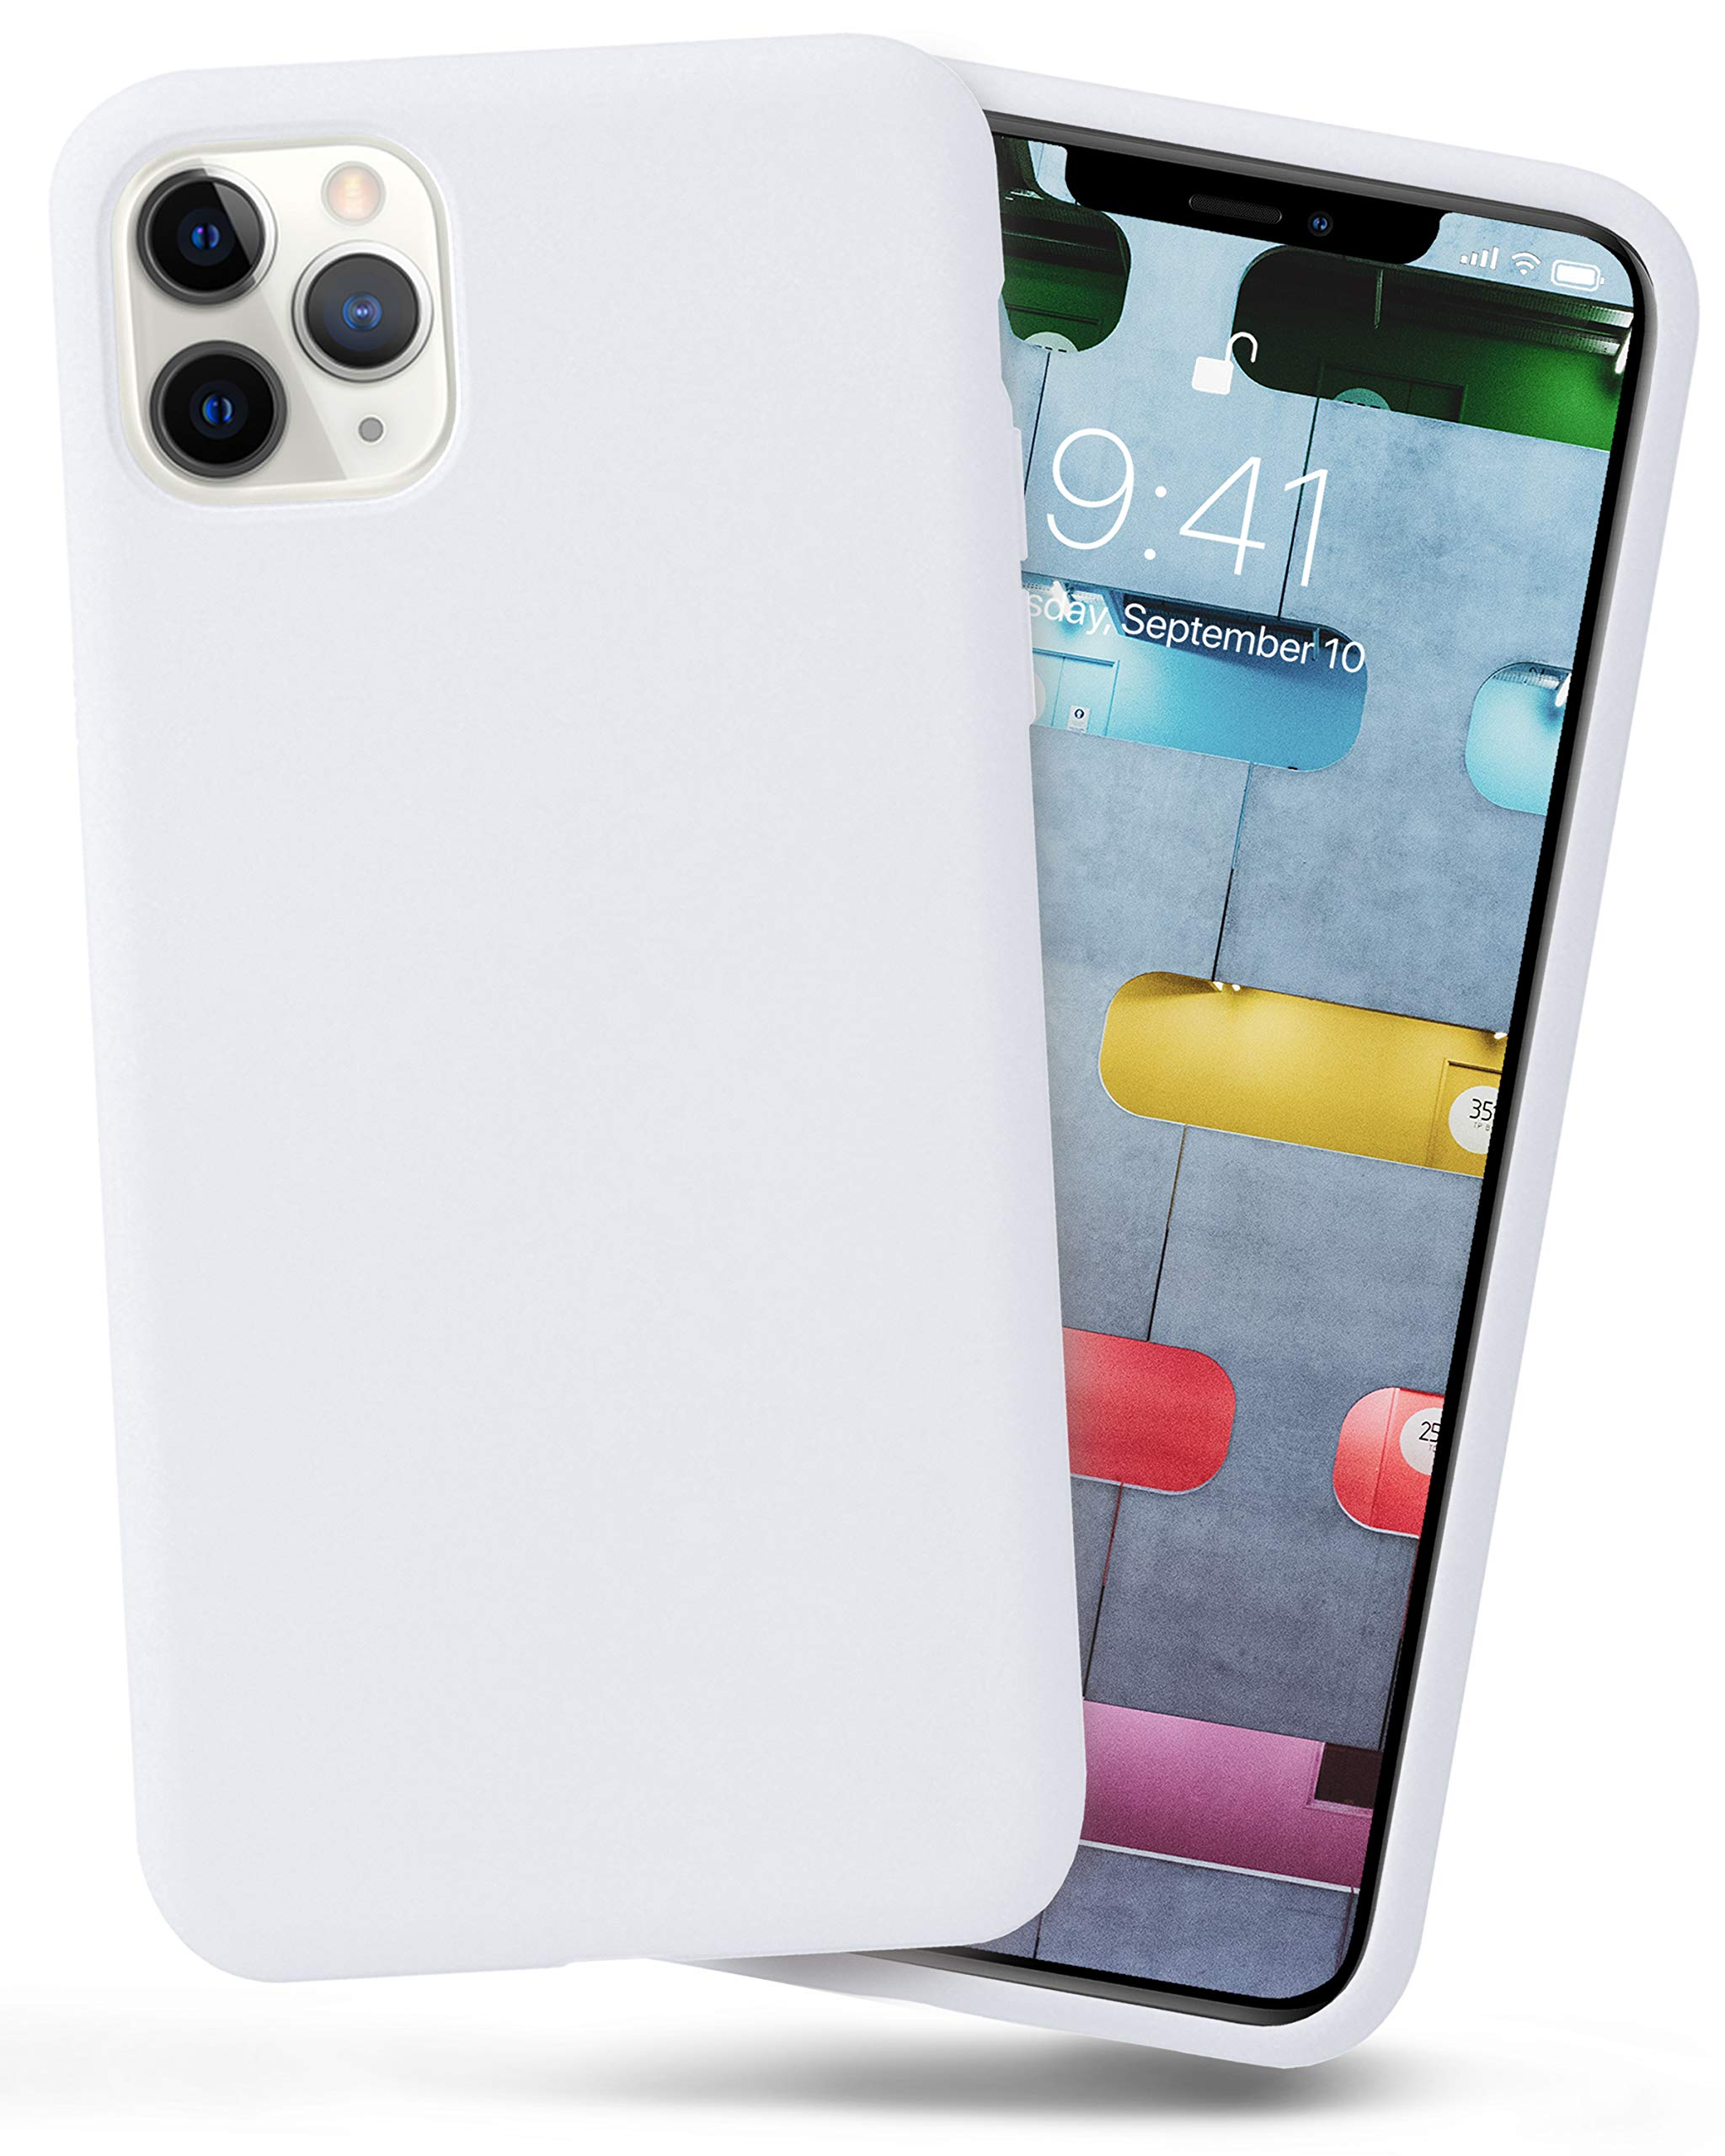 OCOMMO iPhone 11 Pro MAX Silicone Case, Full Body Shockproof Protective Liquid Silicone iPhone 11 Pro MAX Case with Soft Microfiber Lining, Wireless Charging Pad Compatible, White